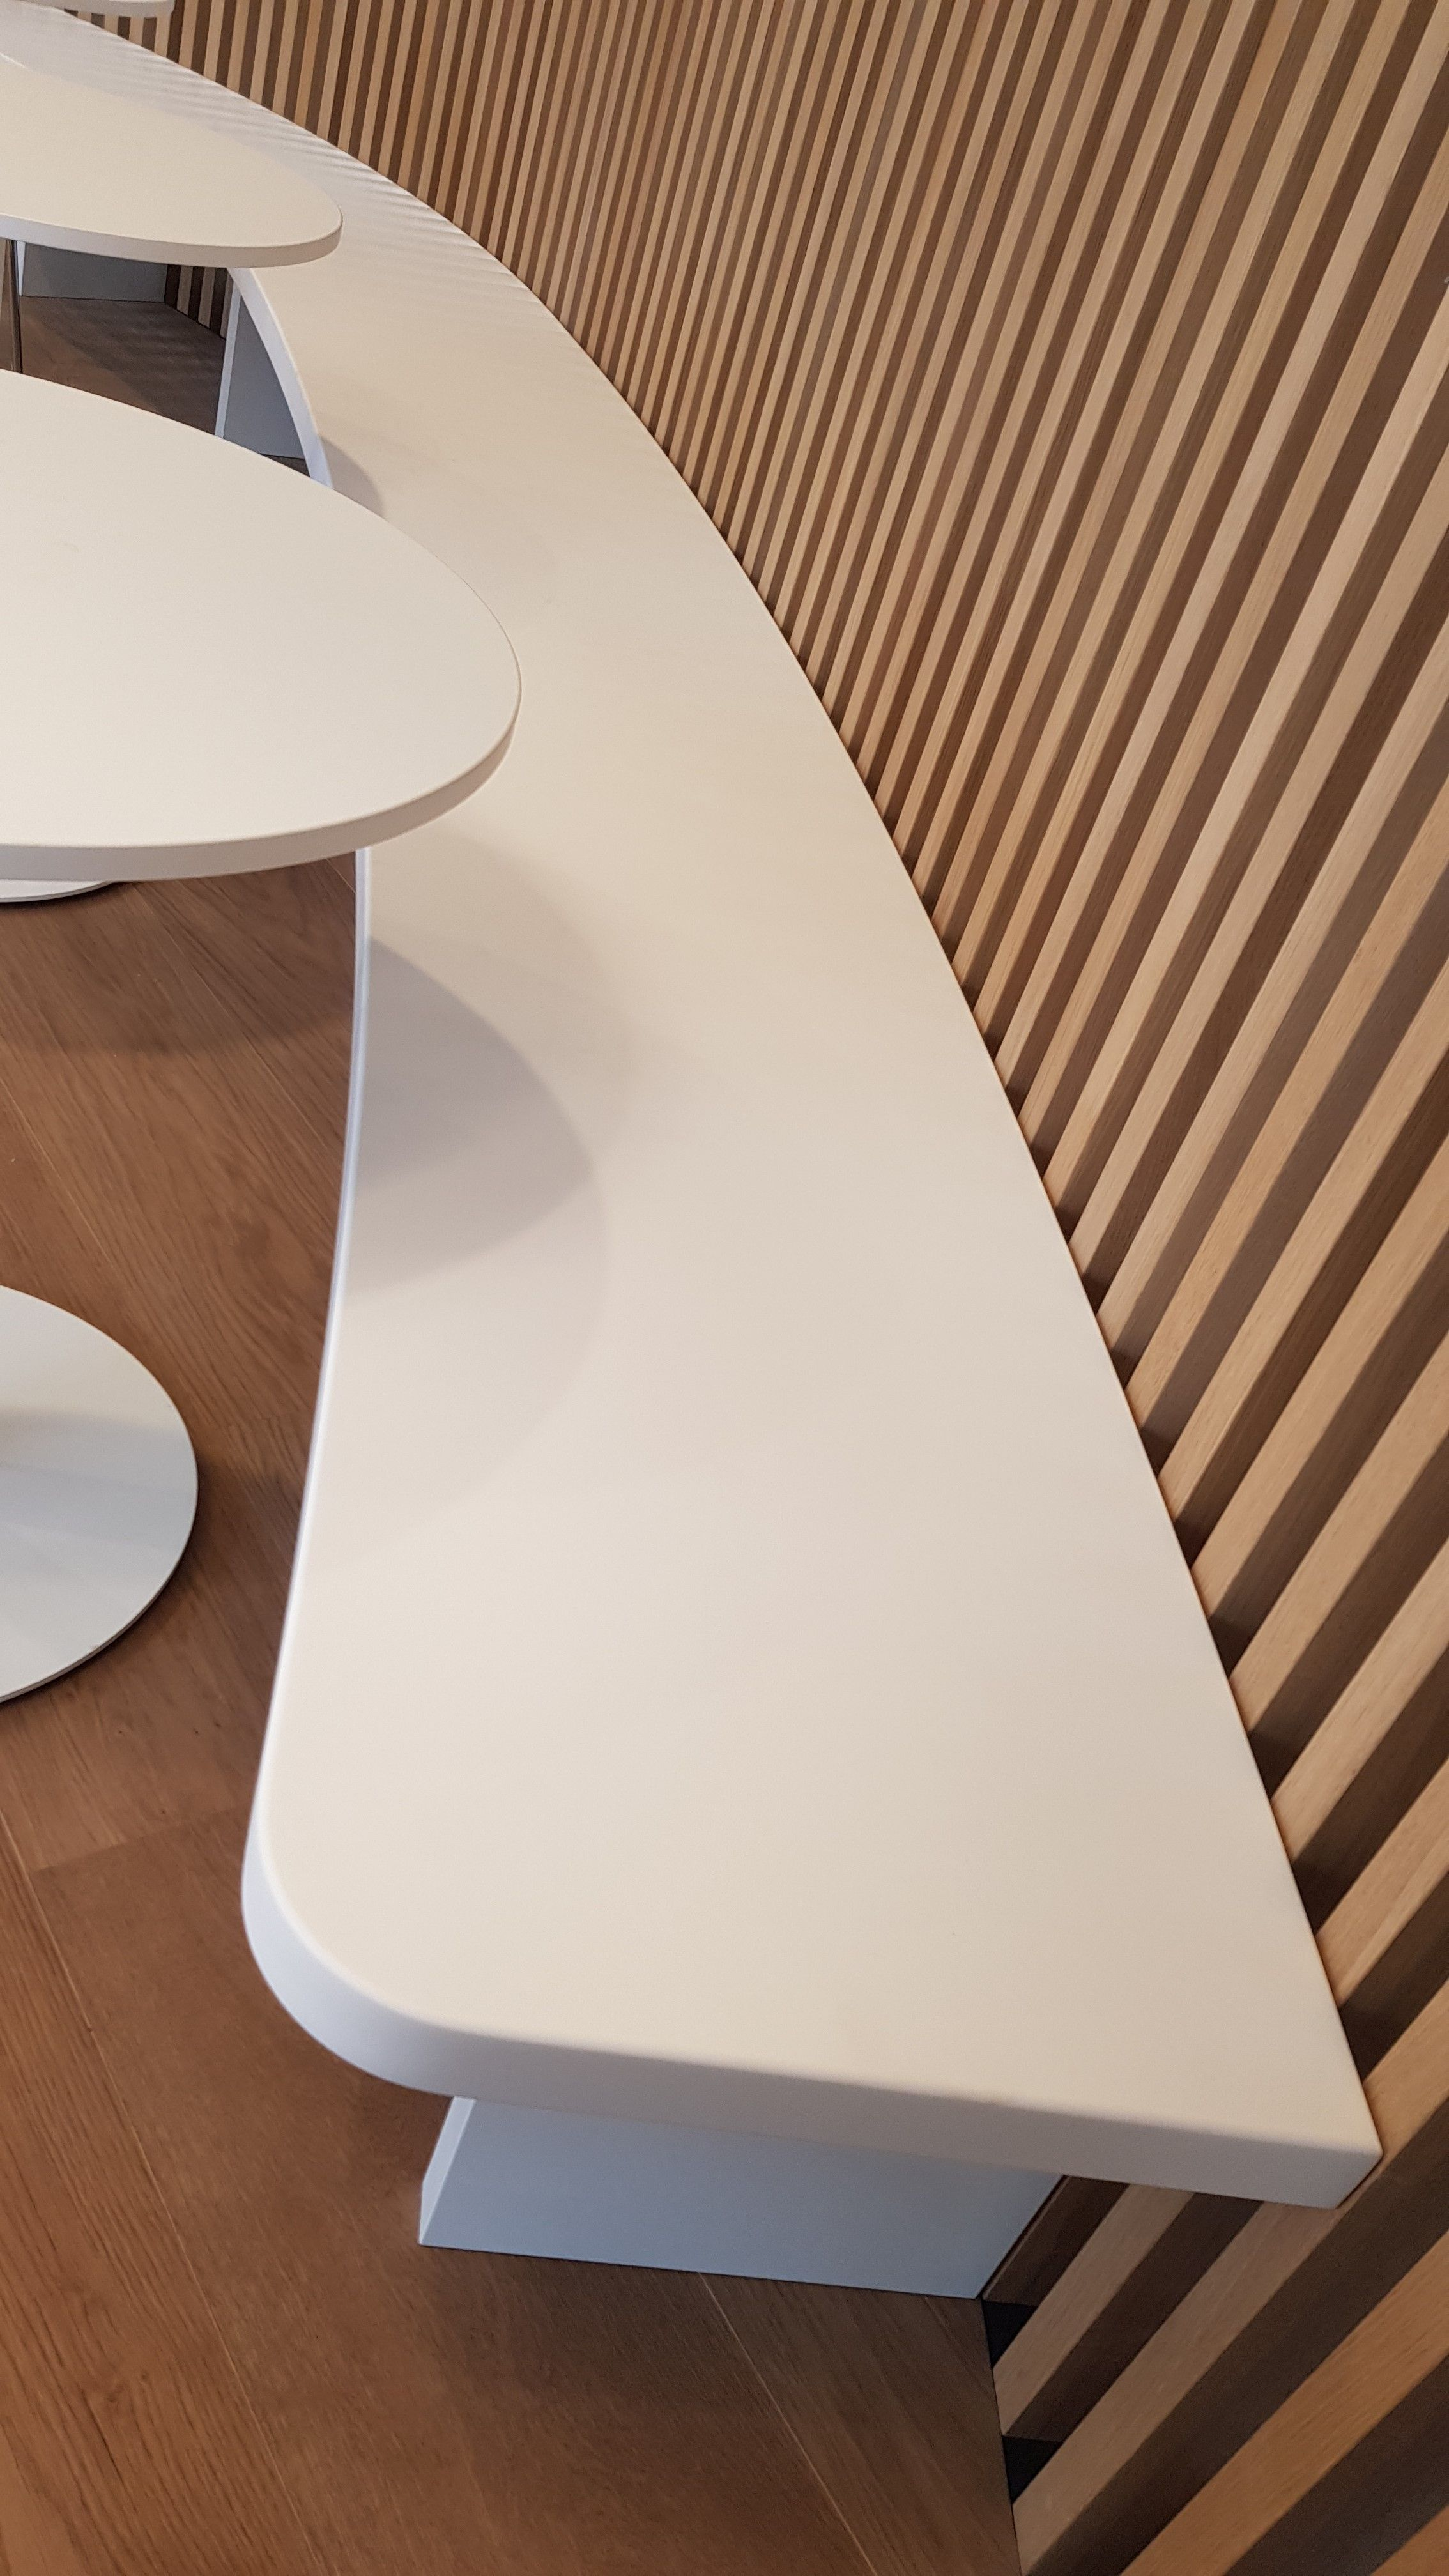 Banquette Solid Surface Solidsurface Design Agencement